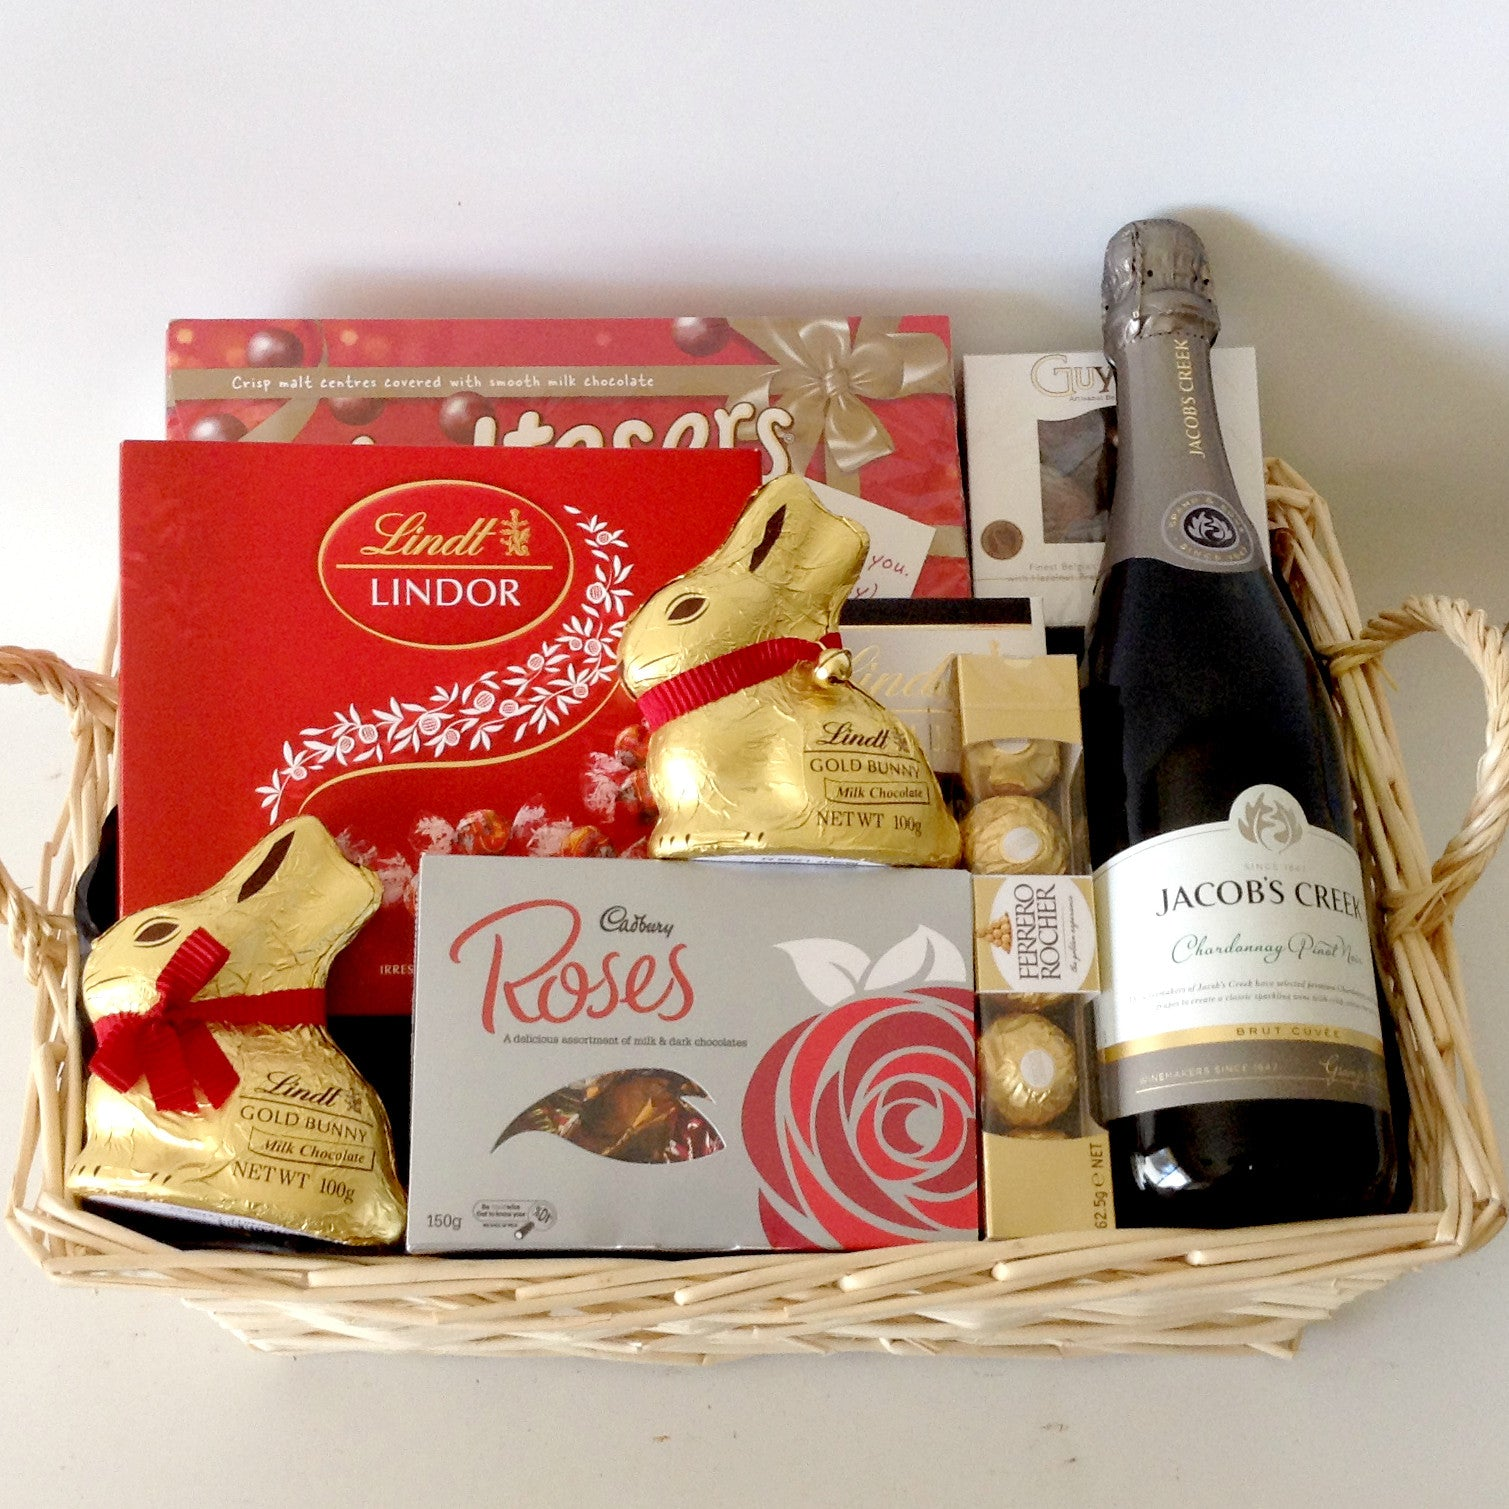 Chocolate gift boxes perth gift hampers perth chocolate baskets chocolate gift boxes perth lindt chocolate gift baskets australia lamoureph negle Image collections